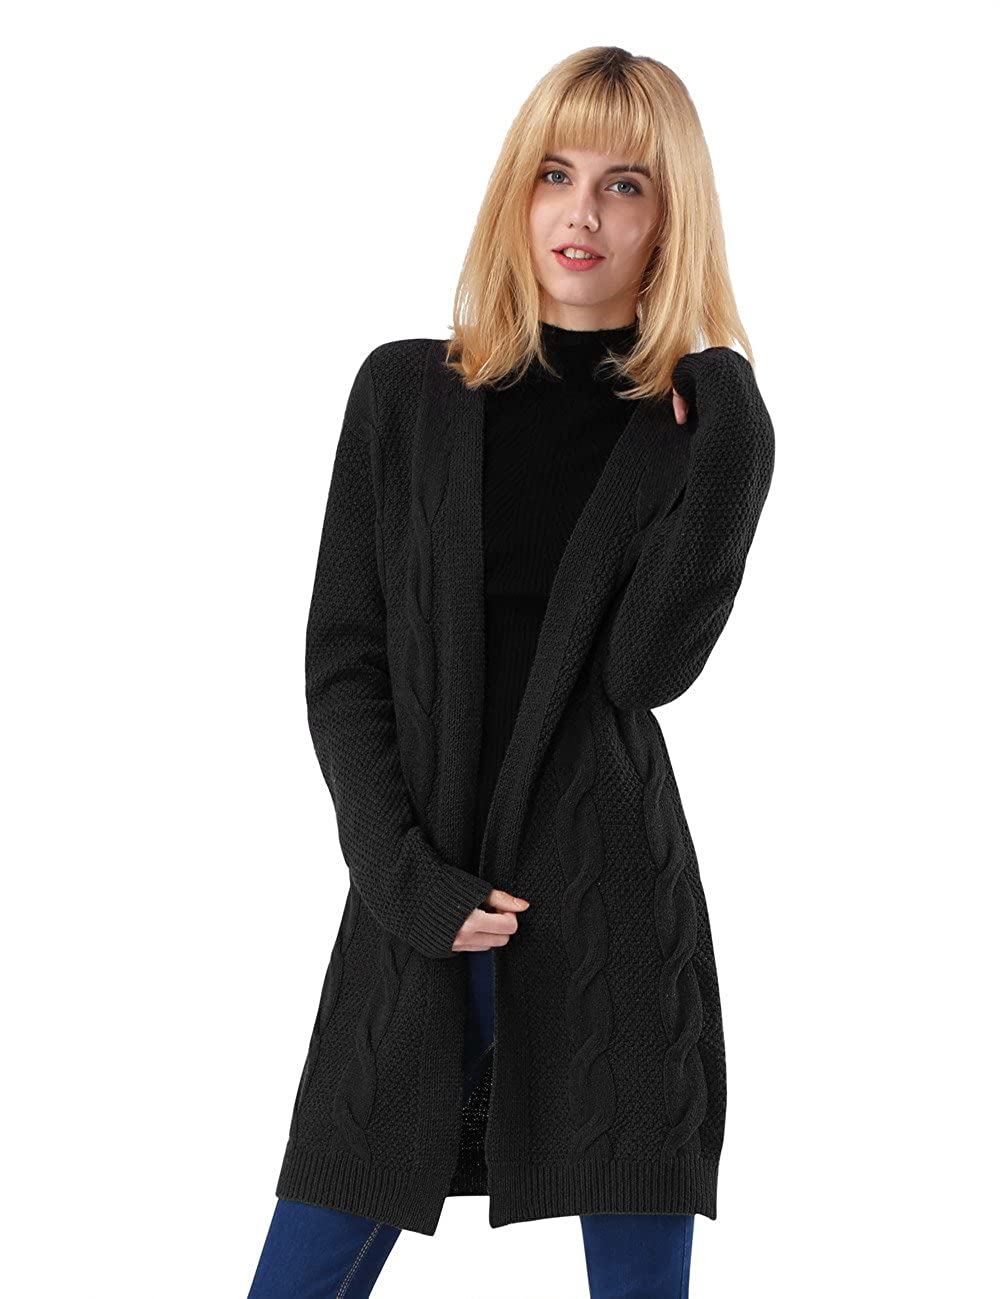 ninovino Womens Open Front Sweater Cardigan Twist Cable Knitted Long Sleeve Coat